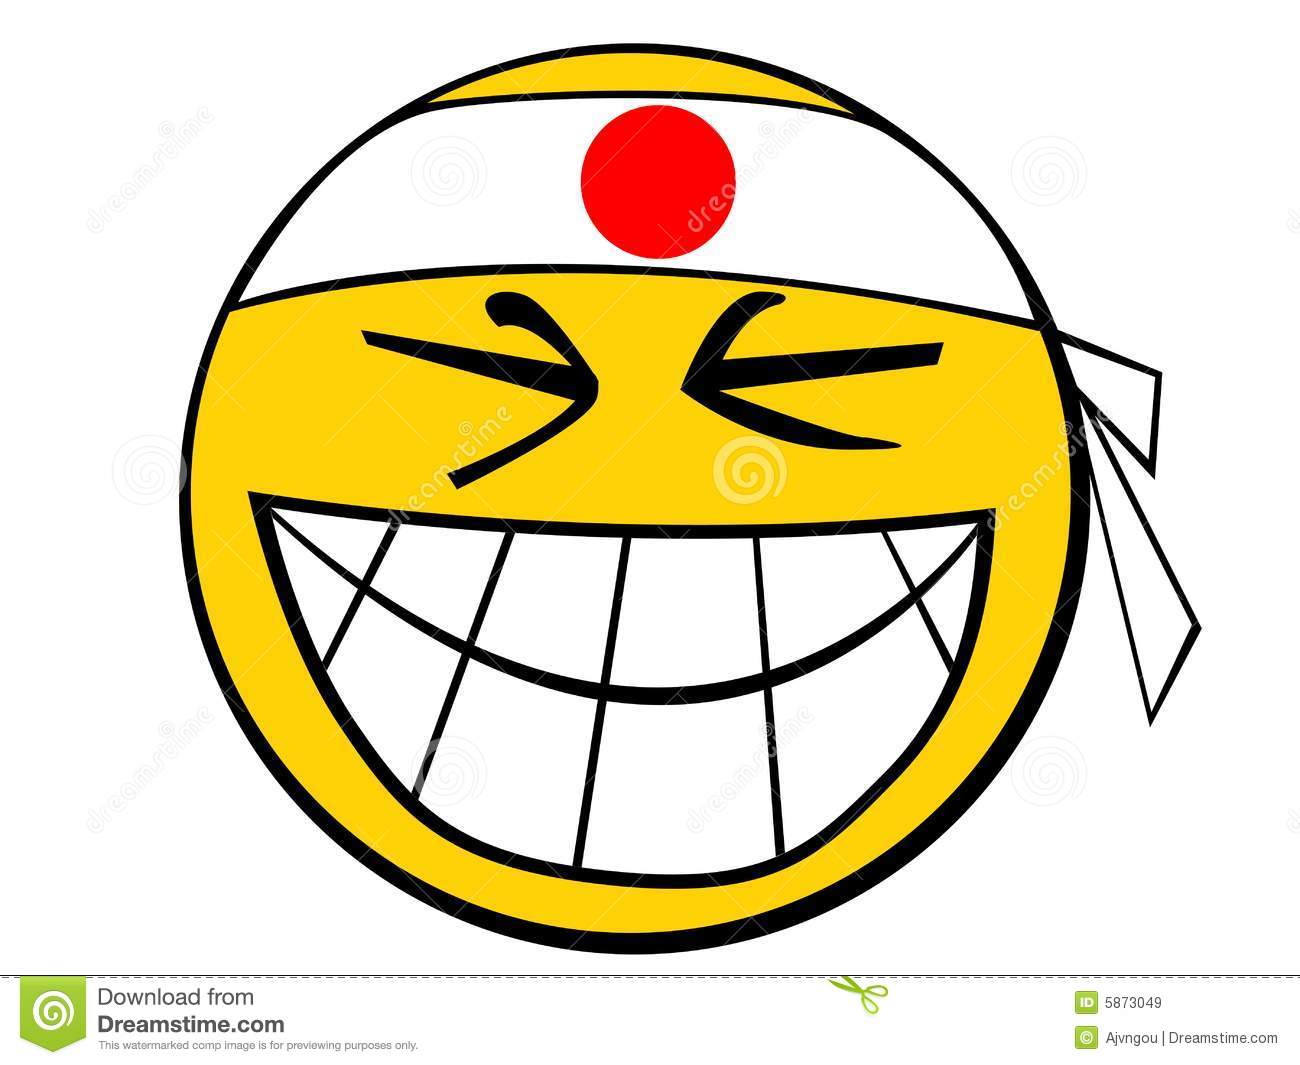 Smiley Icon Japan Guy Royalty Free Stock Images - Image: 5873049